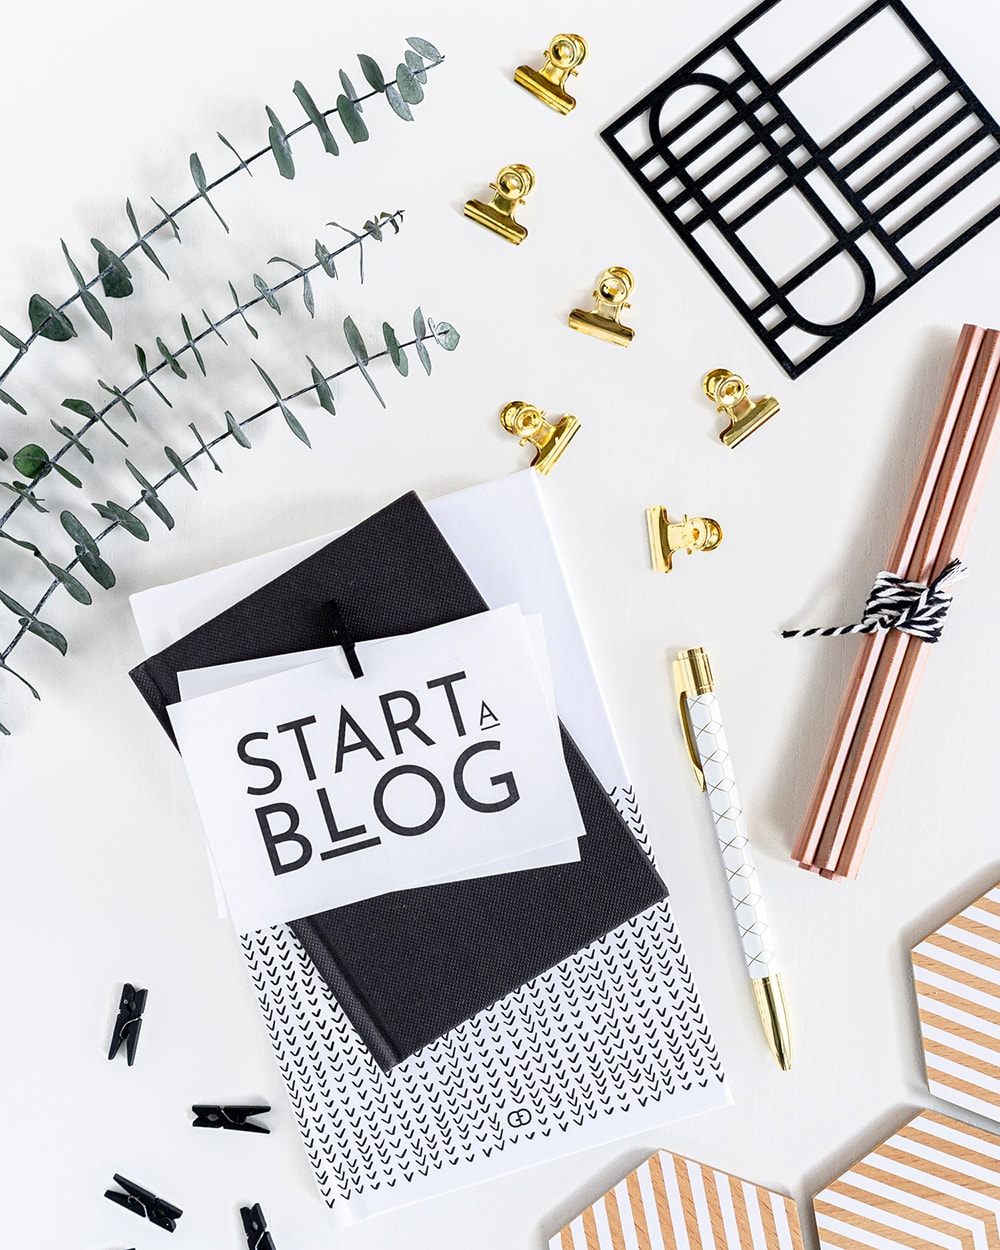 How to start a blog: find out how to make money. With blogging you can easily make $100 dollars a day